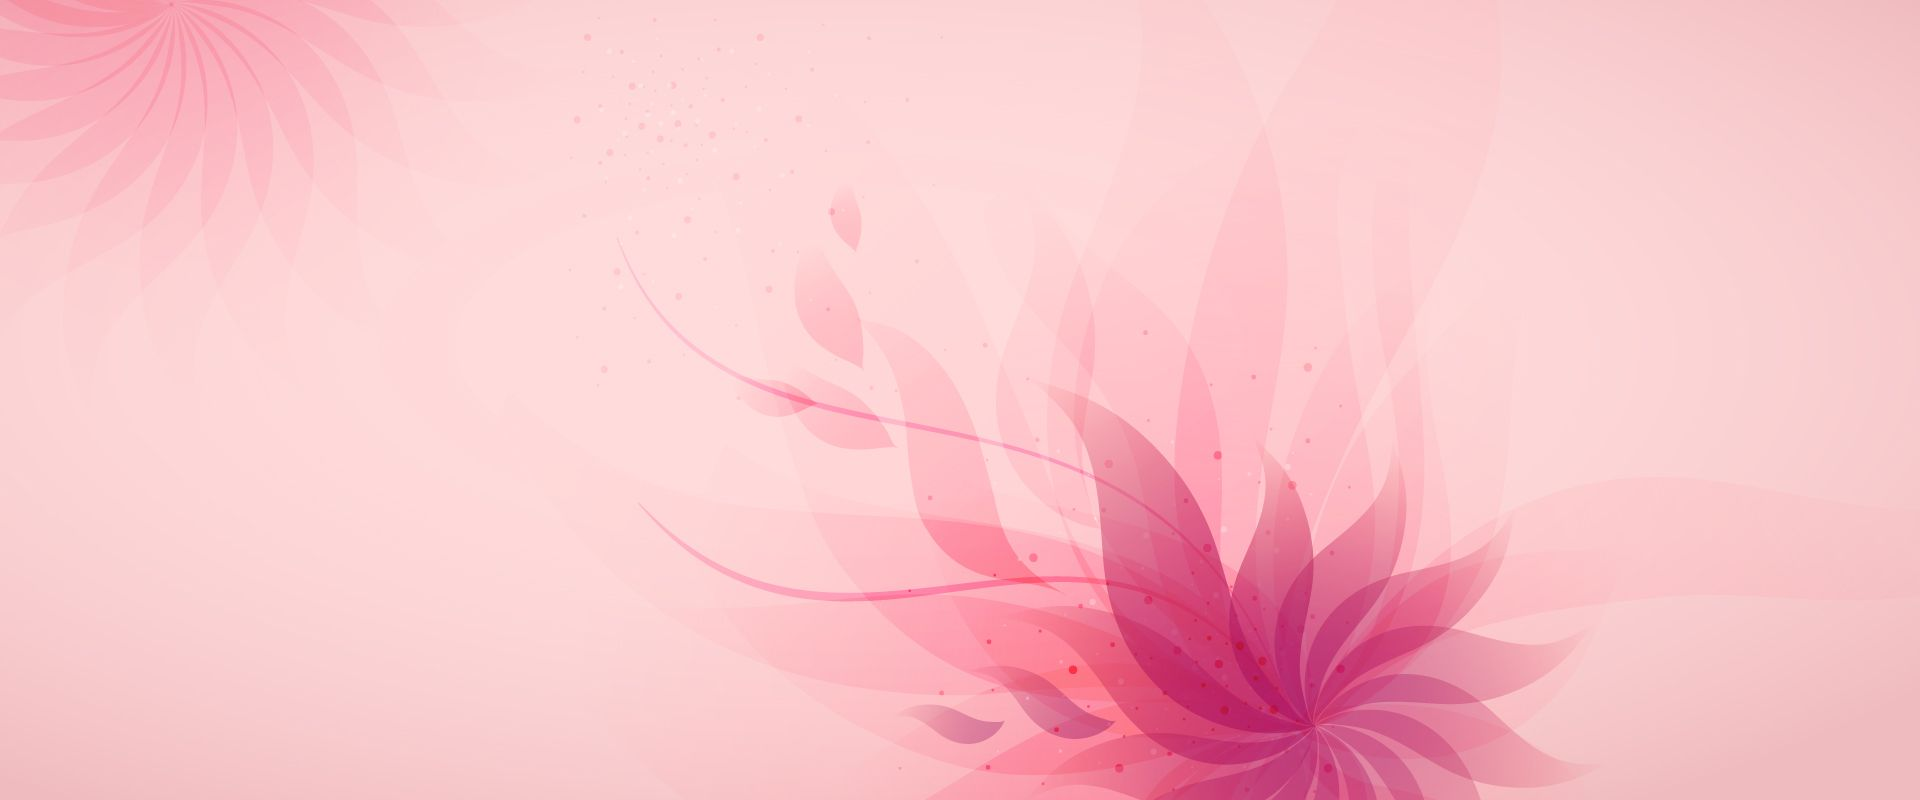 Abstract Pink Floral Background Pink Floral Background Abstract